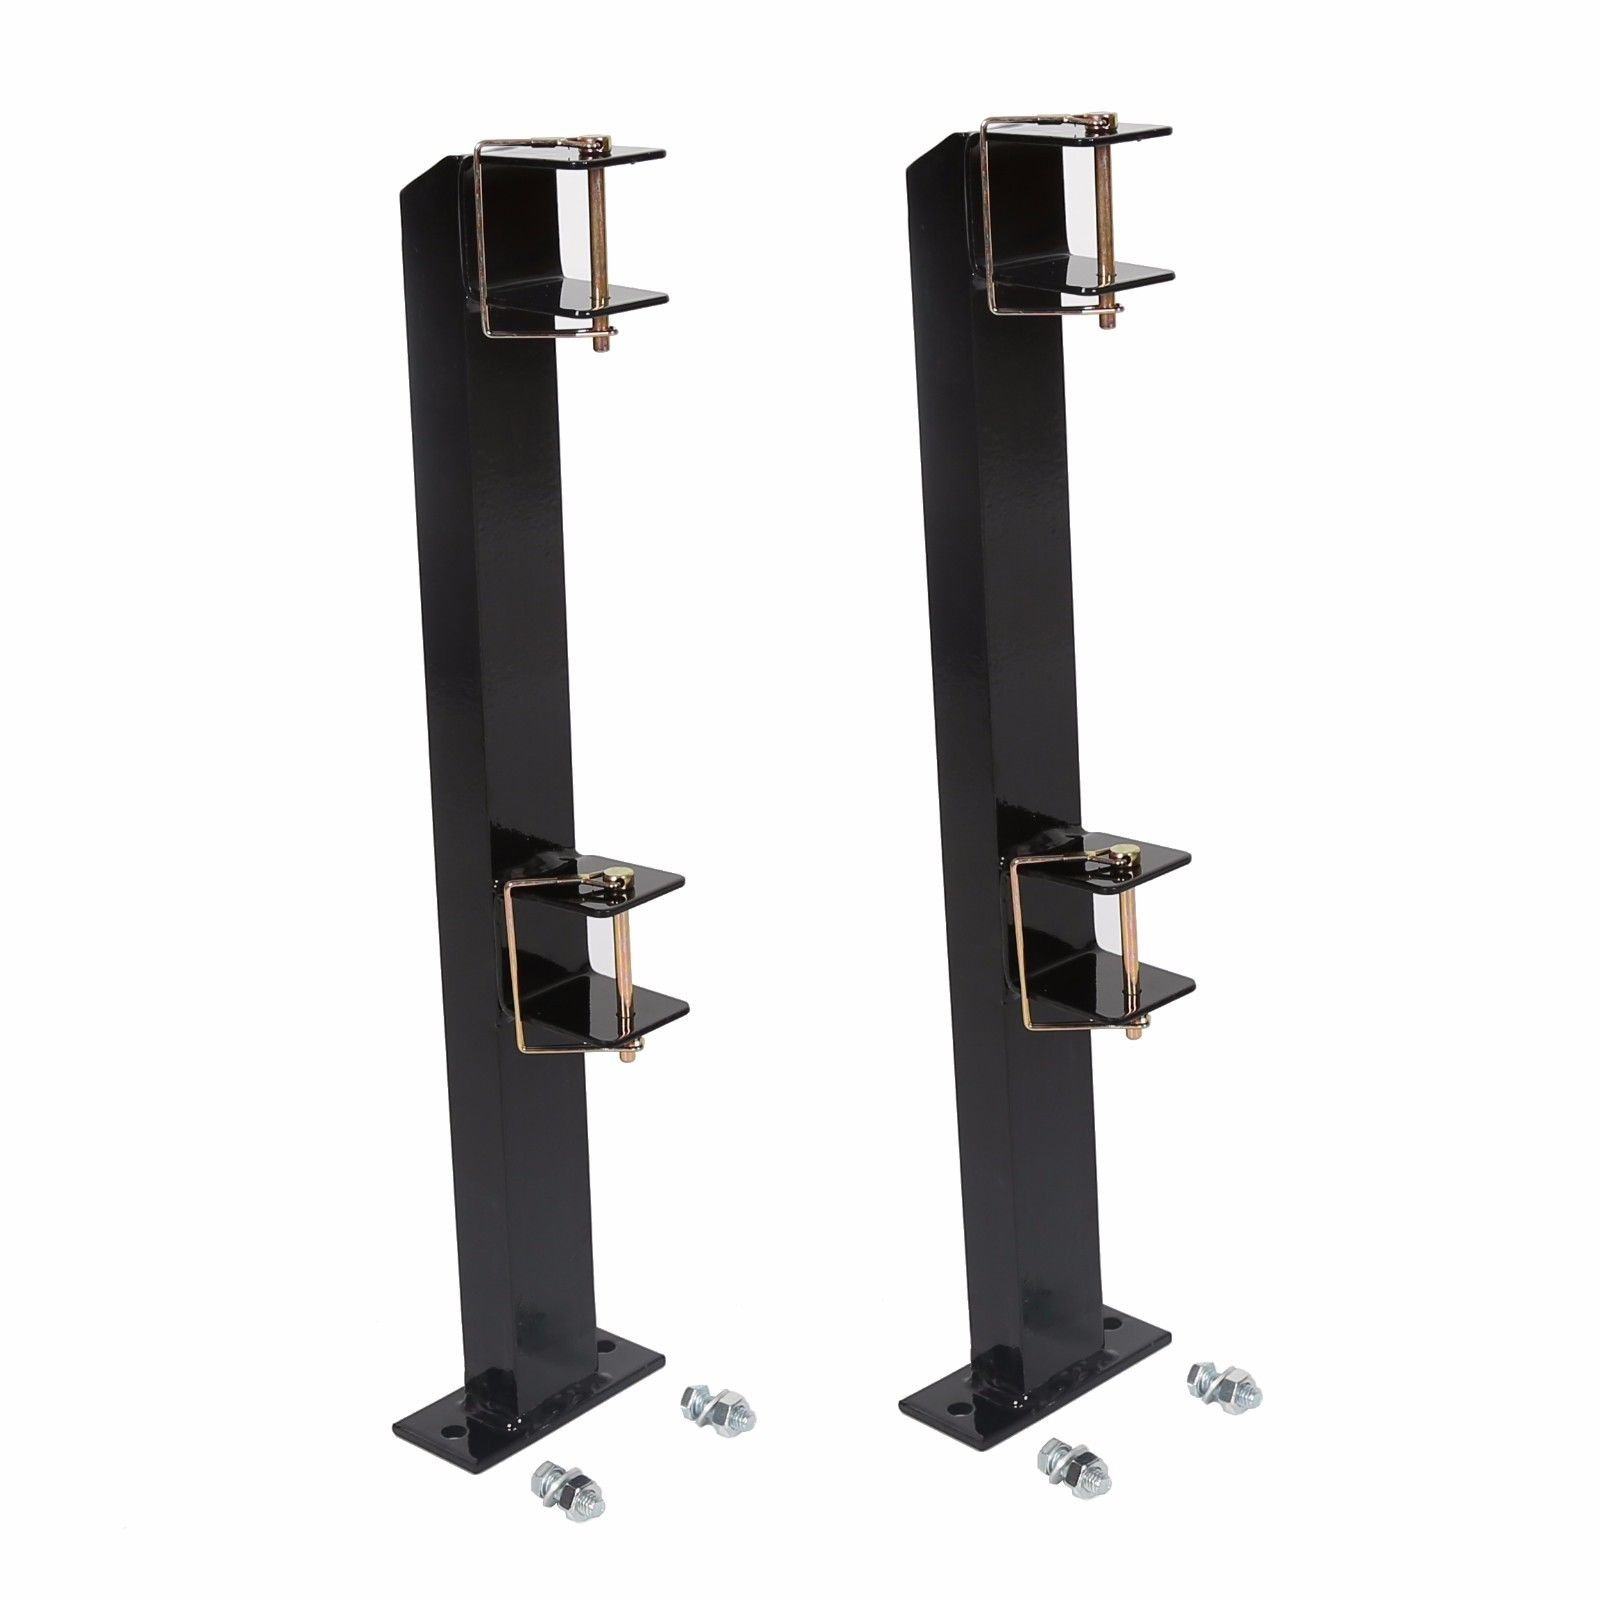 TimmyHouse Weed Eater Edgers Gas Trimmer Rack Holders for Open Landscape Trailer 2 Place